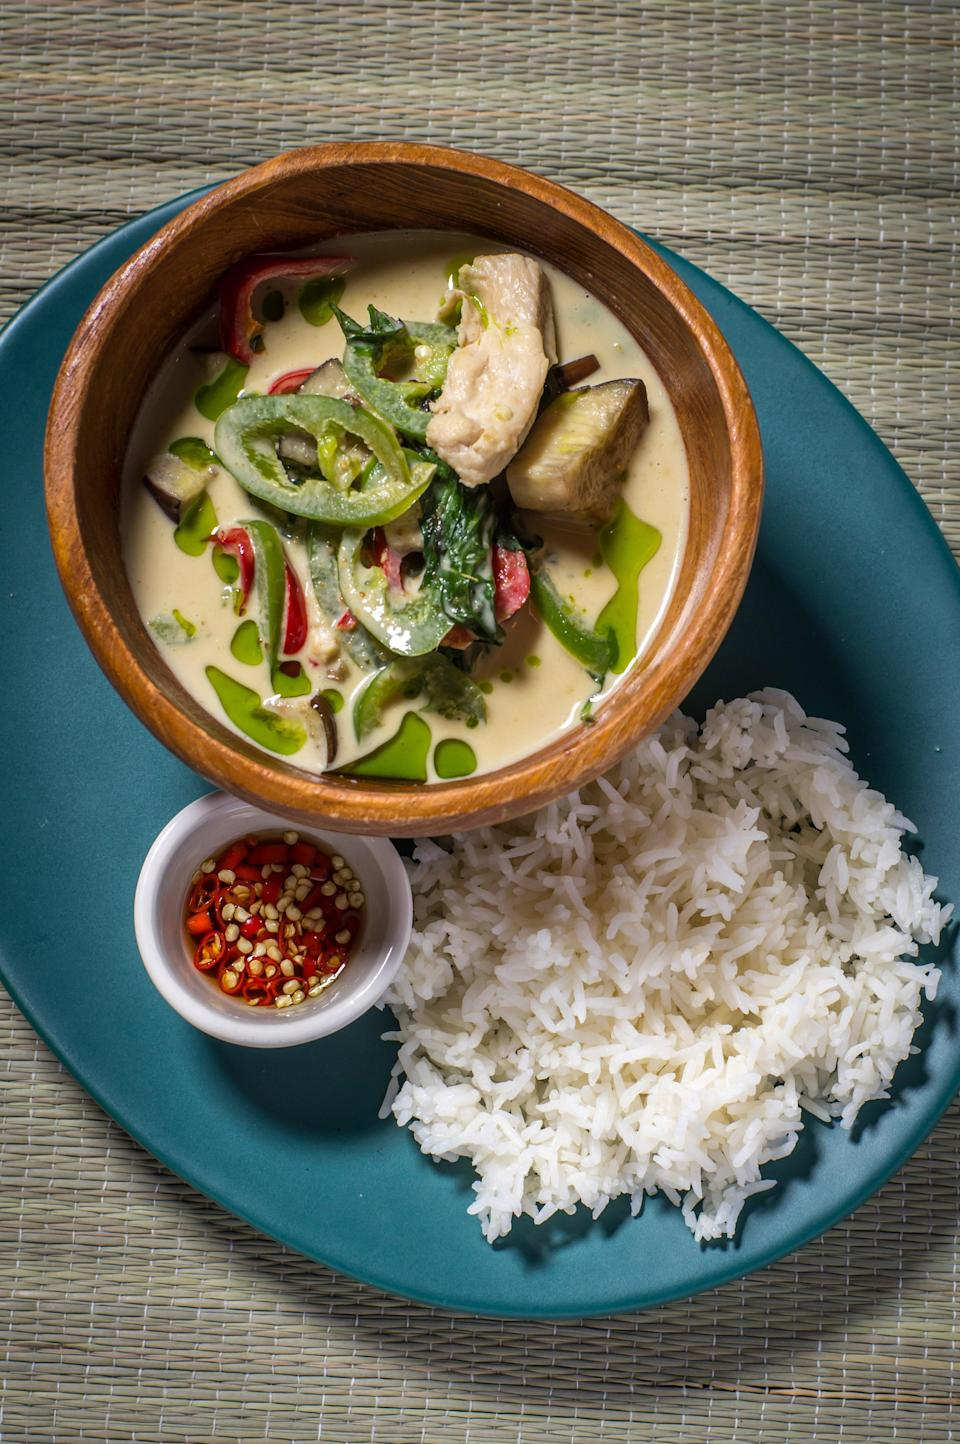 """This fragrant green curry with chicken and eggplant comes from Chef Hong Thaimee, author of <a href=""""https://www.amazon.com/True-Thai-Flavors-Every-Table/dp/0847846237"""" rel=""""nofollow noopener"""" target=""""_blank"""" data-ylk=""""slk:True Thai"""" class=""""link rapid-noclick-resp""""><em>True Thai</em></a>. <a href=""""https://www.epicurious.com/recipes/food/views/thai-green-curry-chicken-gaeng-khiaw-wan-gai?mbid=synd_yahoo_rss"""" rel=""""nofollow noopener"""" target=""""_blank"""" data-ylk=""""slk:See recipe."""" class=""""link rapid-noclick-resp"""">See recipe.</a>"""